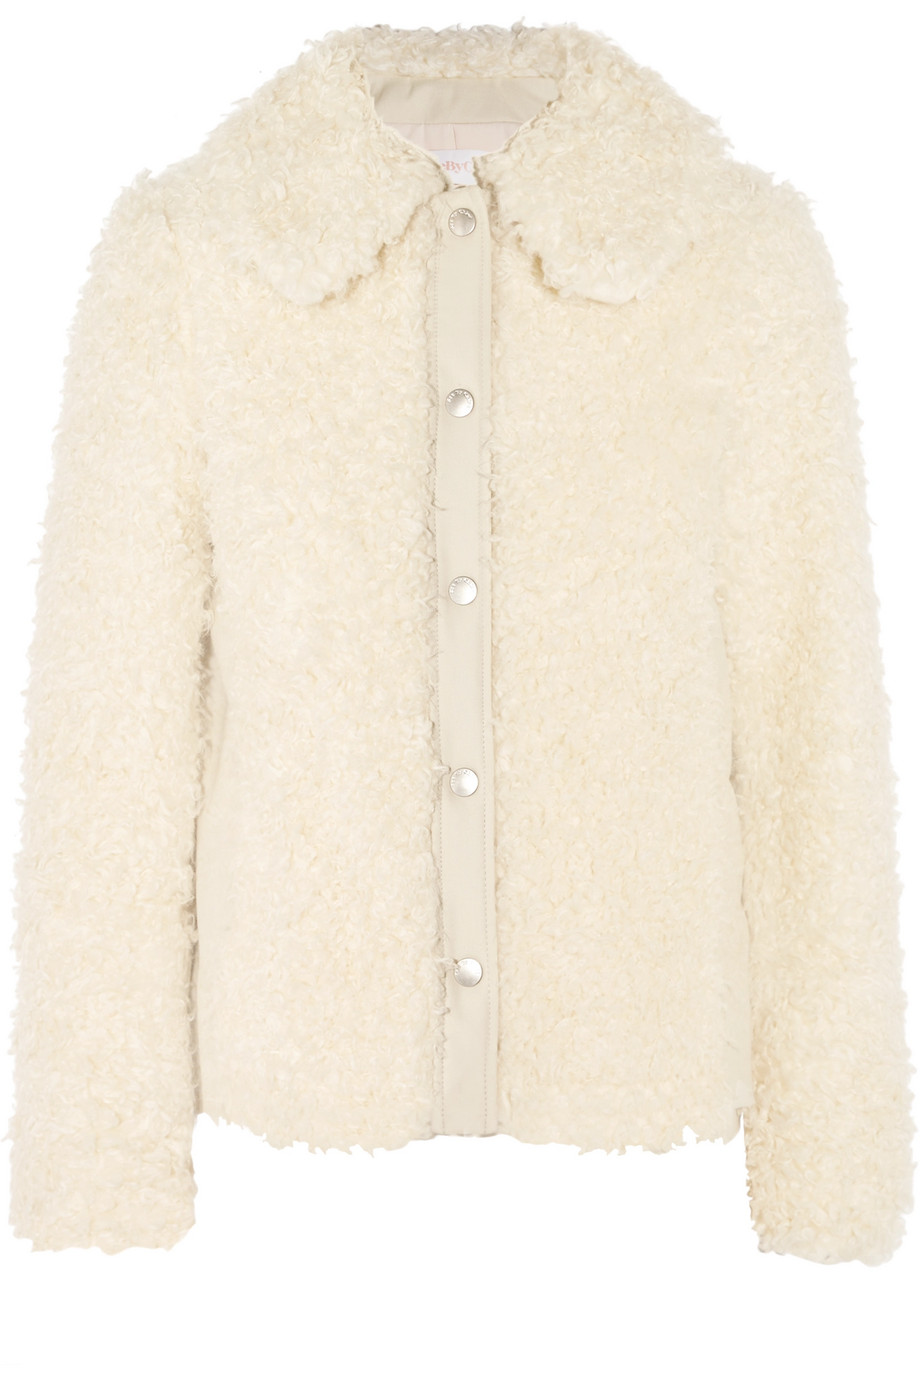 See by Chloé Faux Shearling Jacket, Cream, Women's, Size: 38